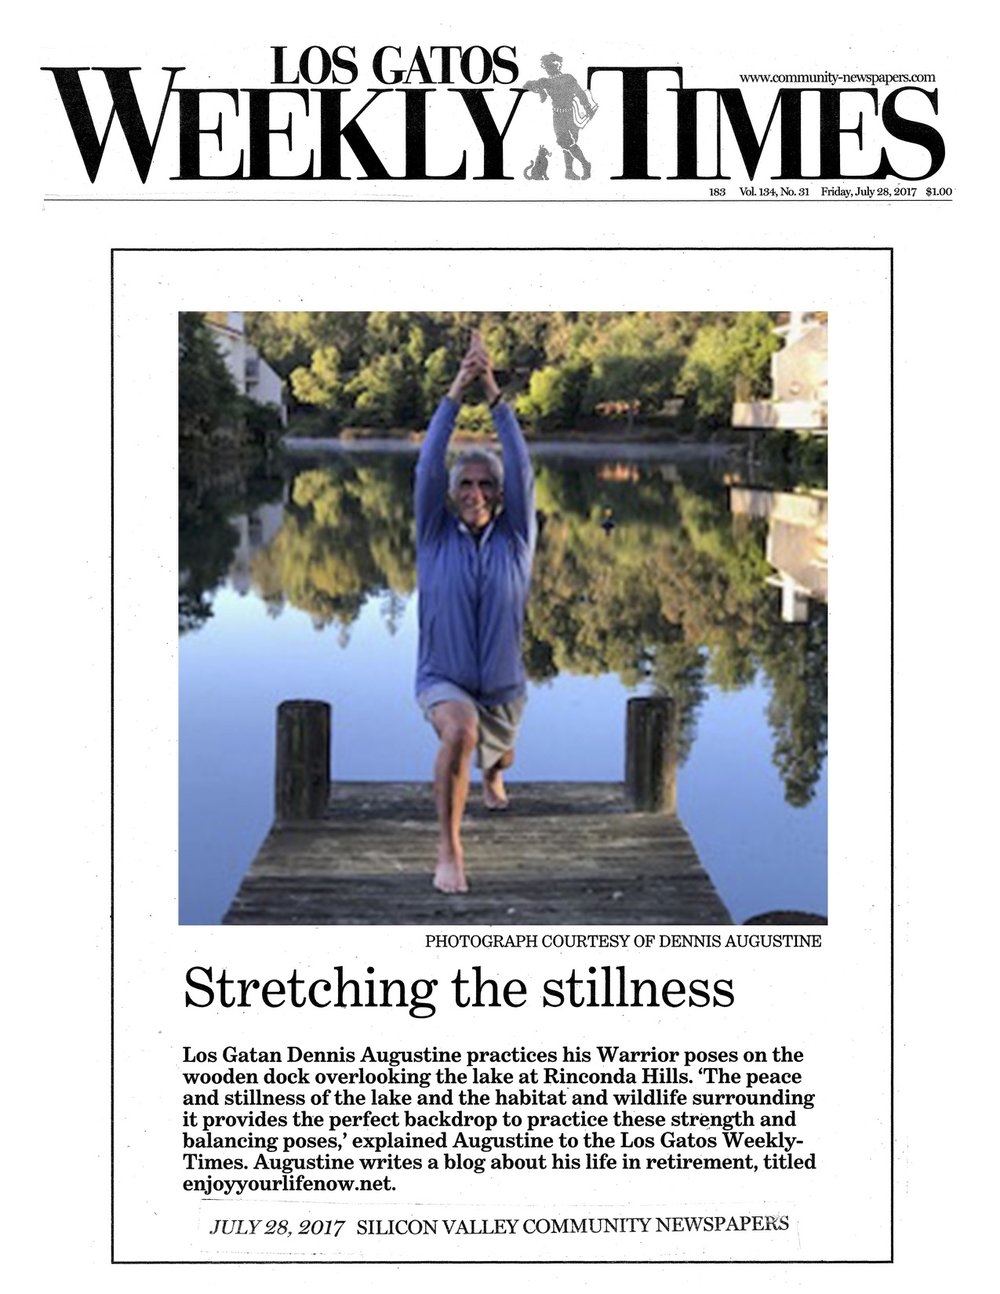 My Yoga Pose item L.G. Times Weekly JPEG.jpg